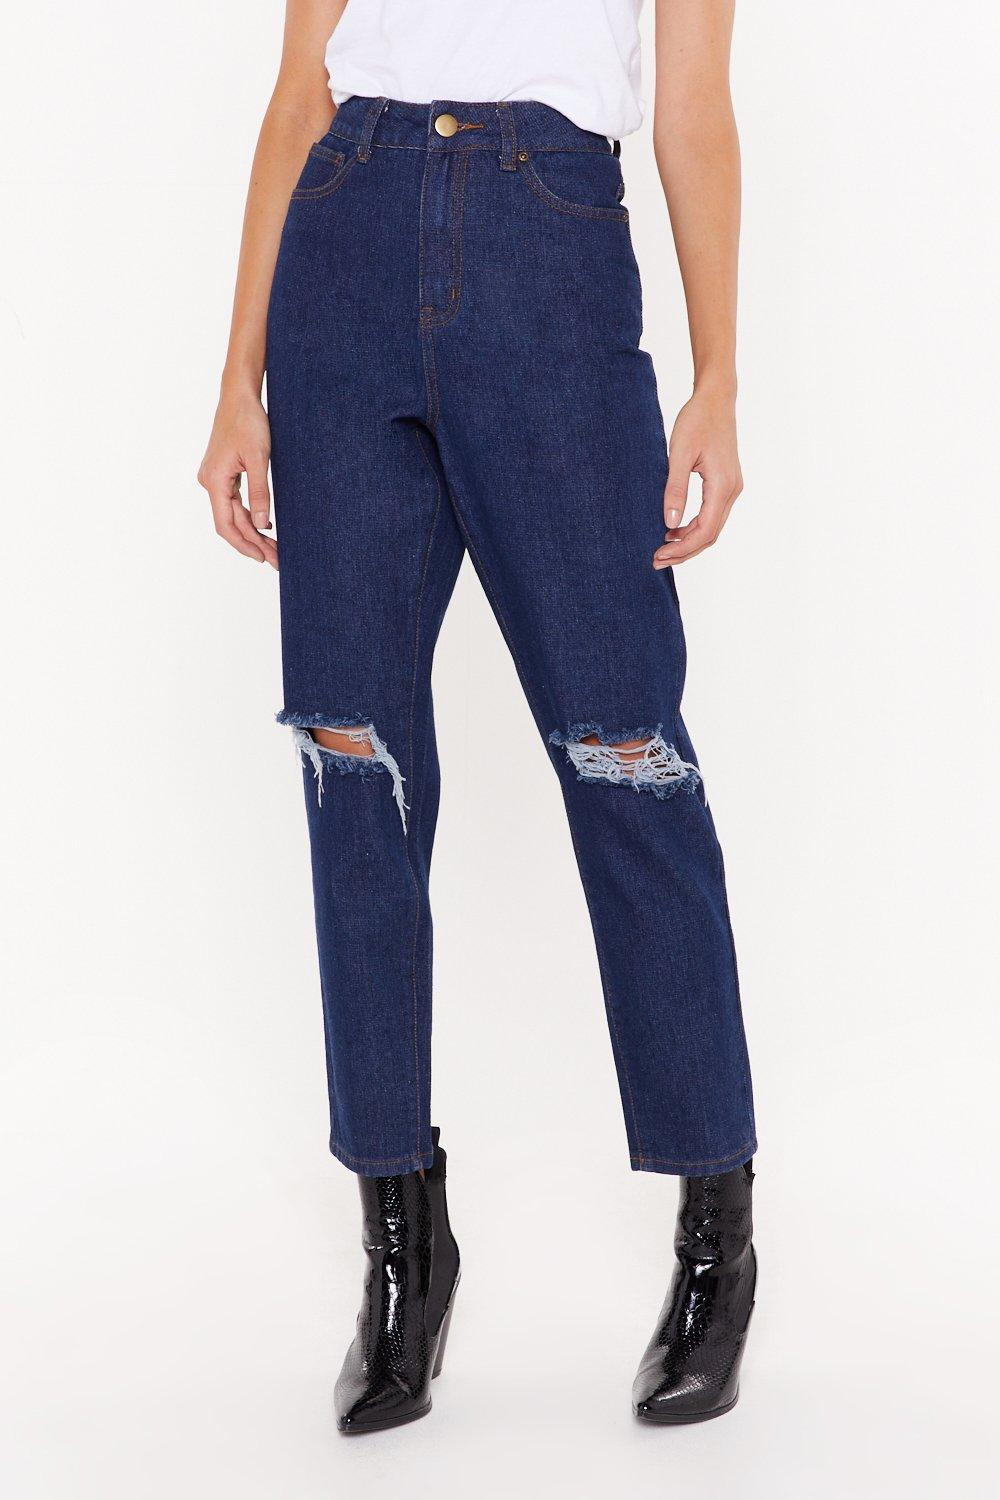 de27e307bab Leave 'Em On Their Knees Ripped Mom Jeans | Shop Clothes at Nasty Gal!